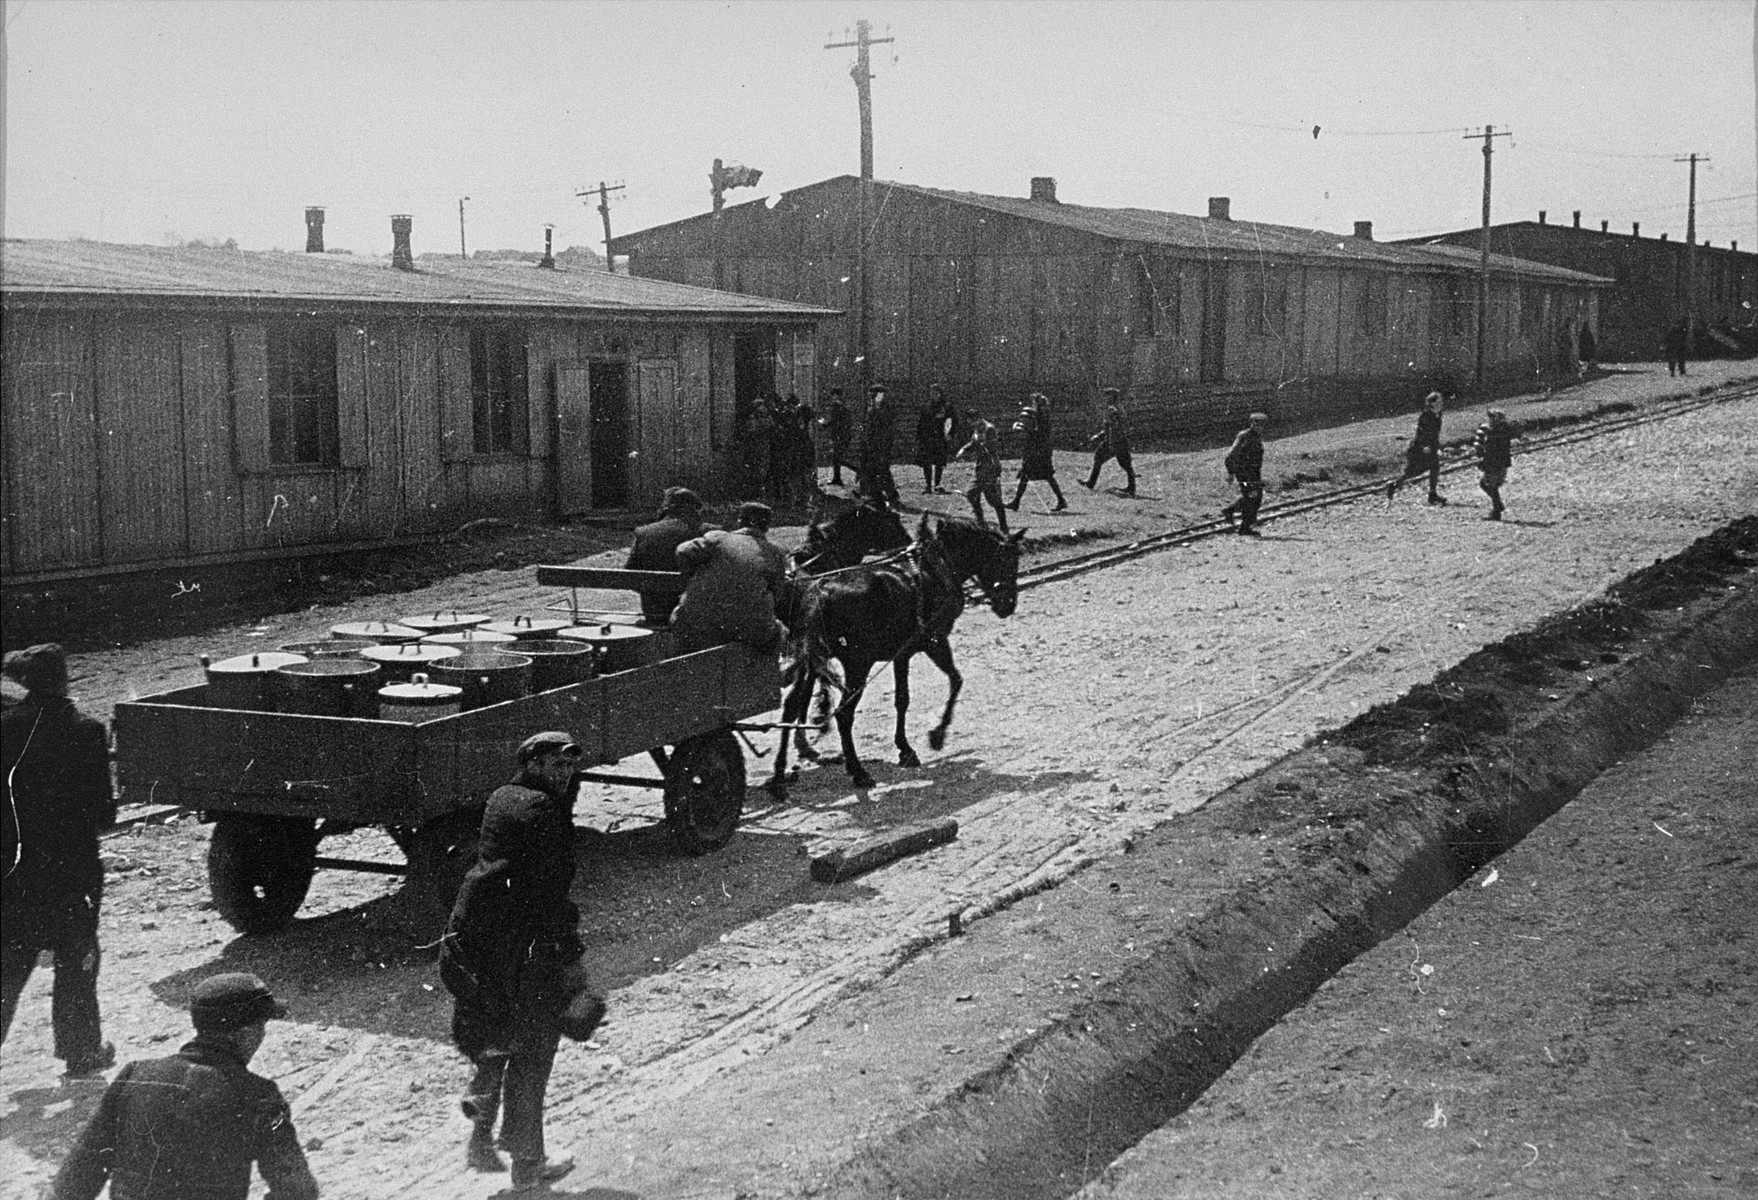 A cart transports food to prisoners in Plaszow.